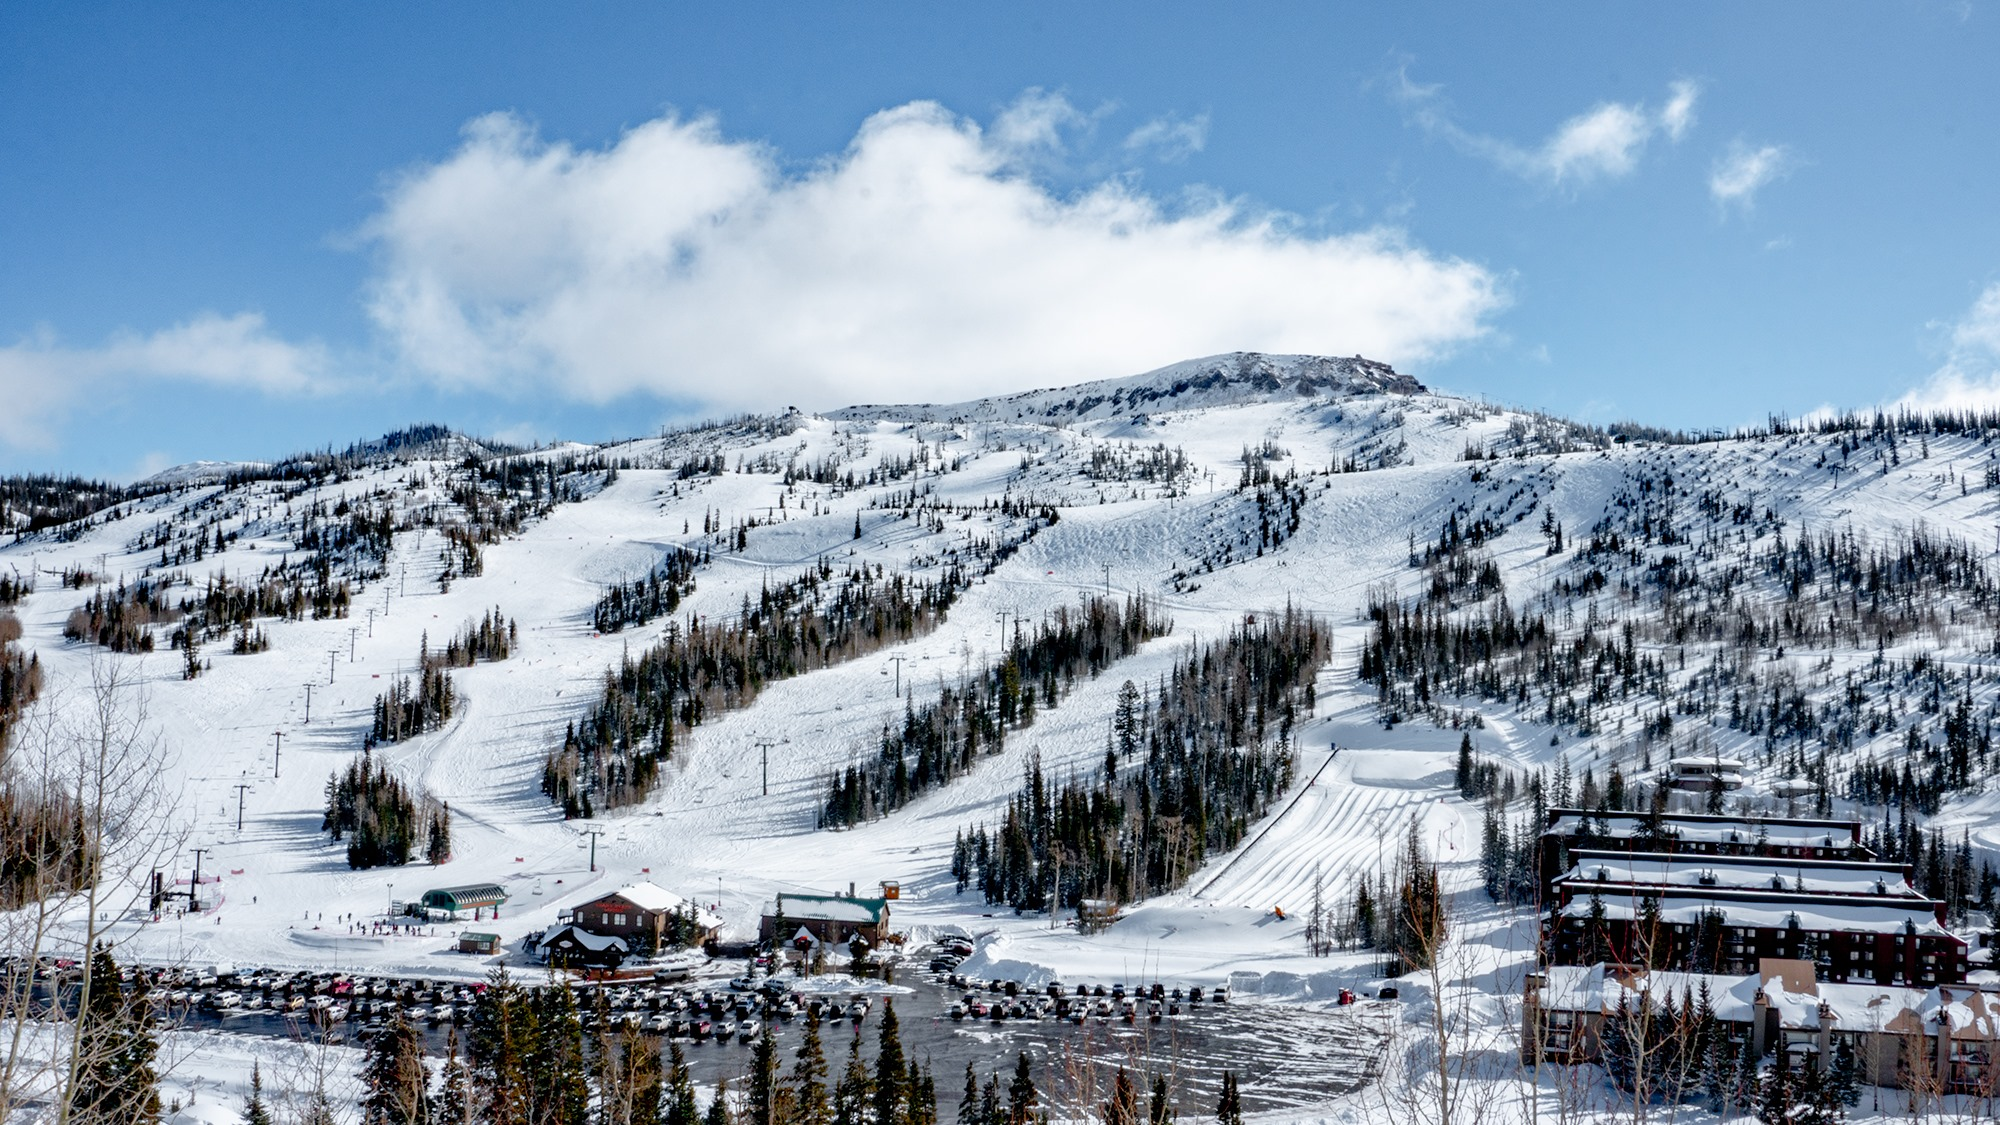 Visit These 5 Utah Ski Resorts With Affordable Lift Tickets